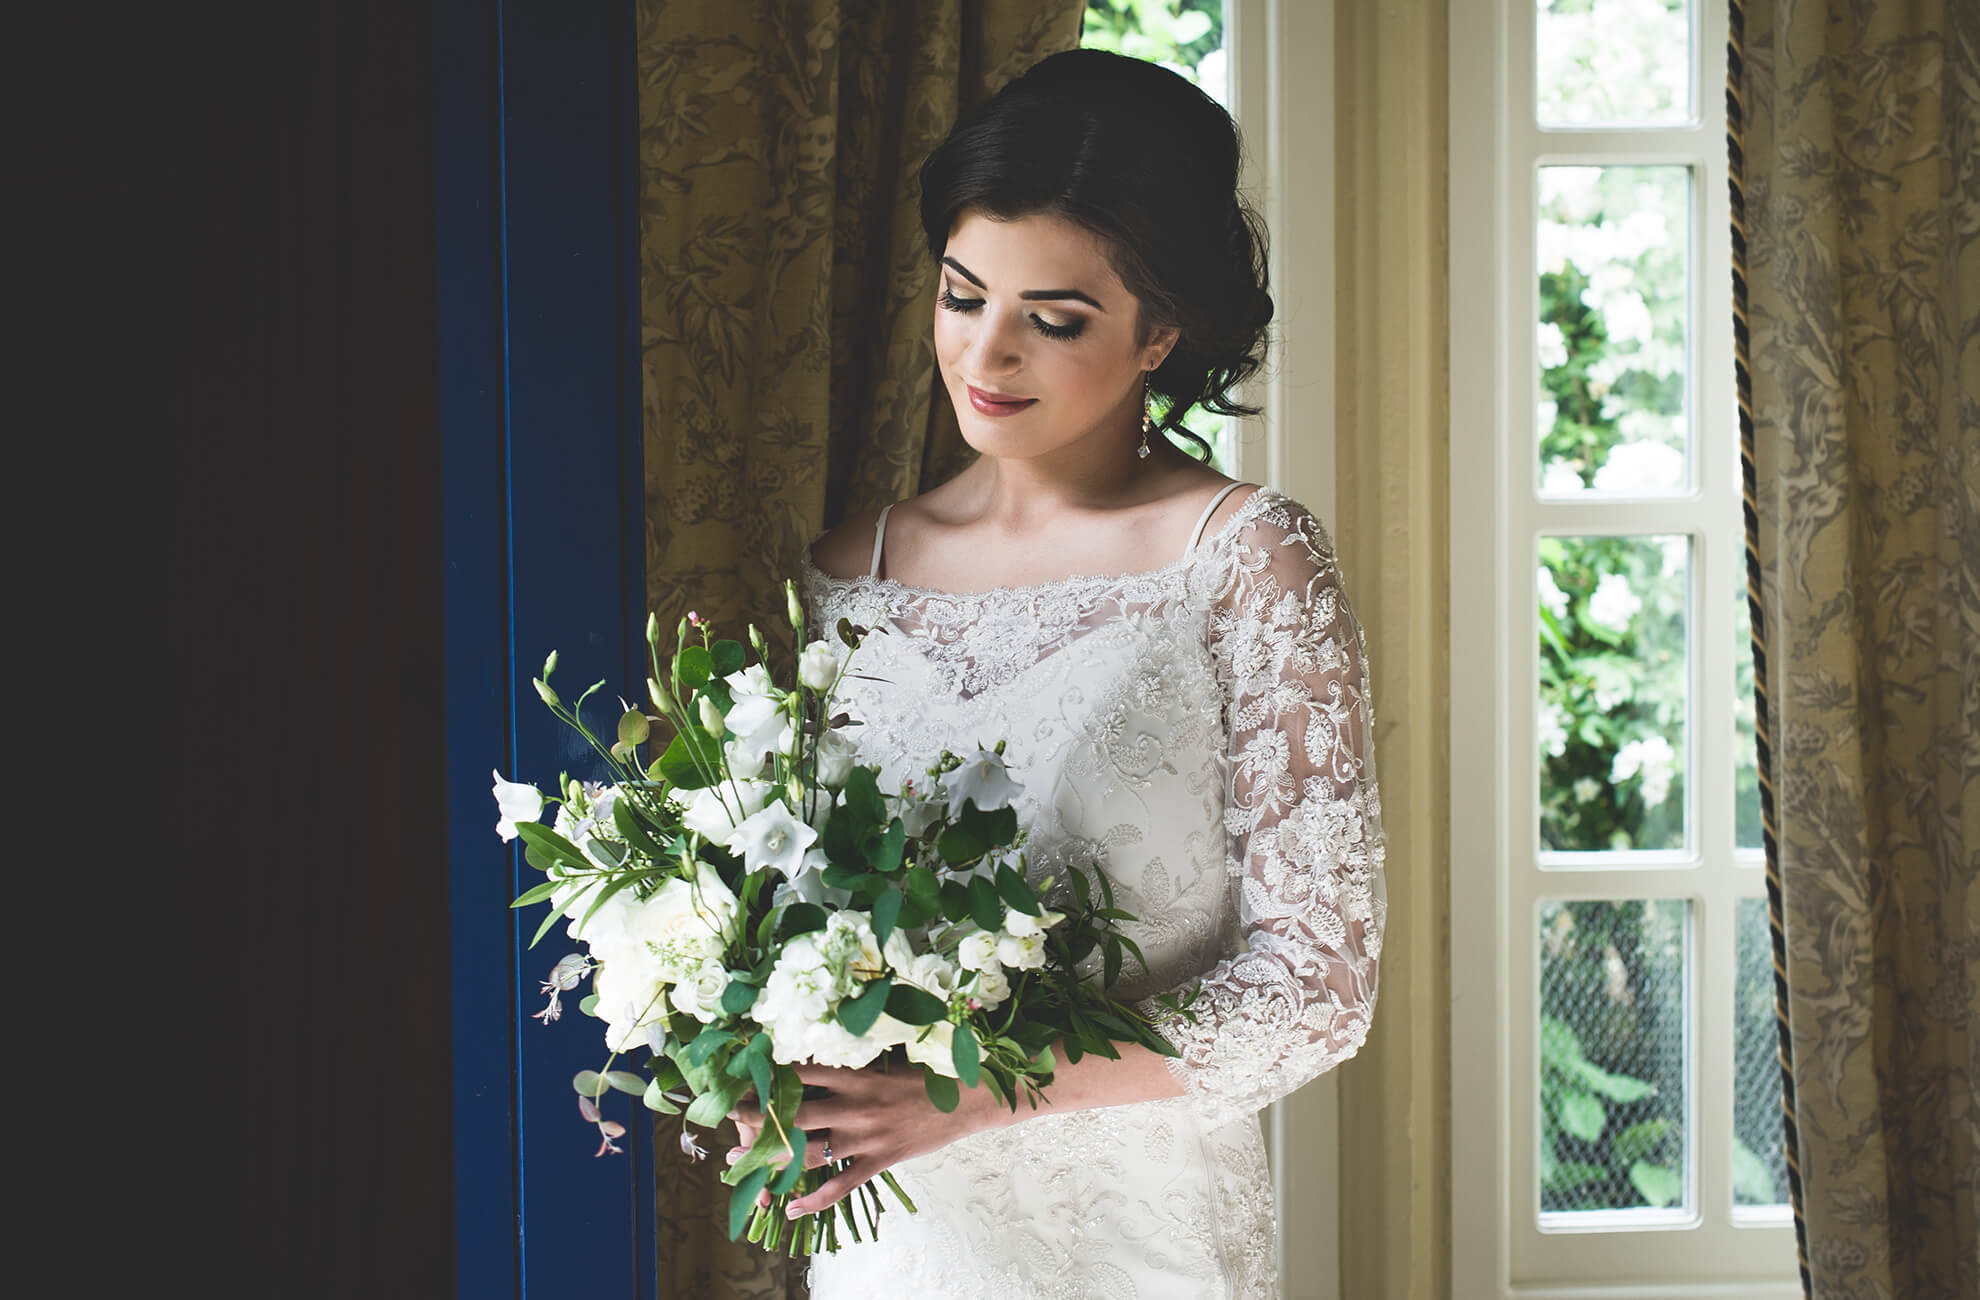 The bride holds her white and greenery filled bridal bouquet as she prepares for her wedding at Combermere Abbey